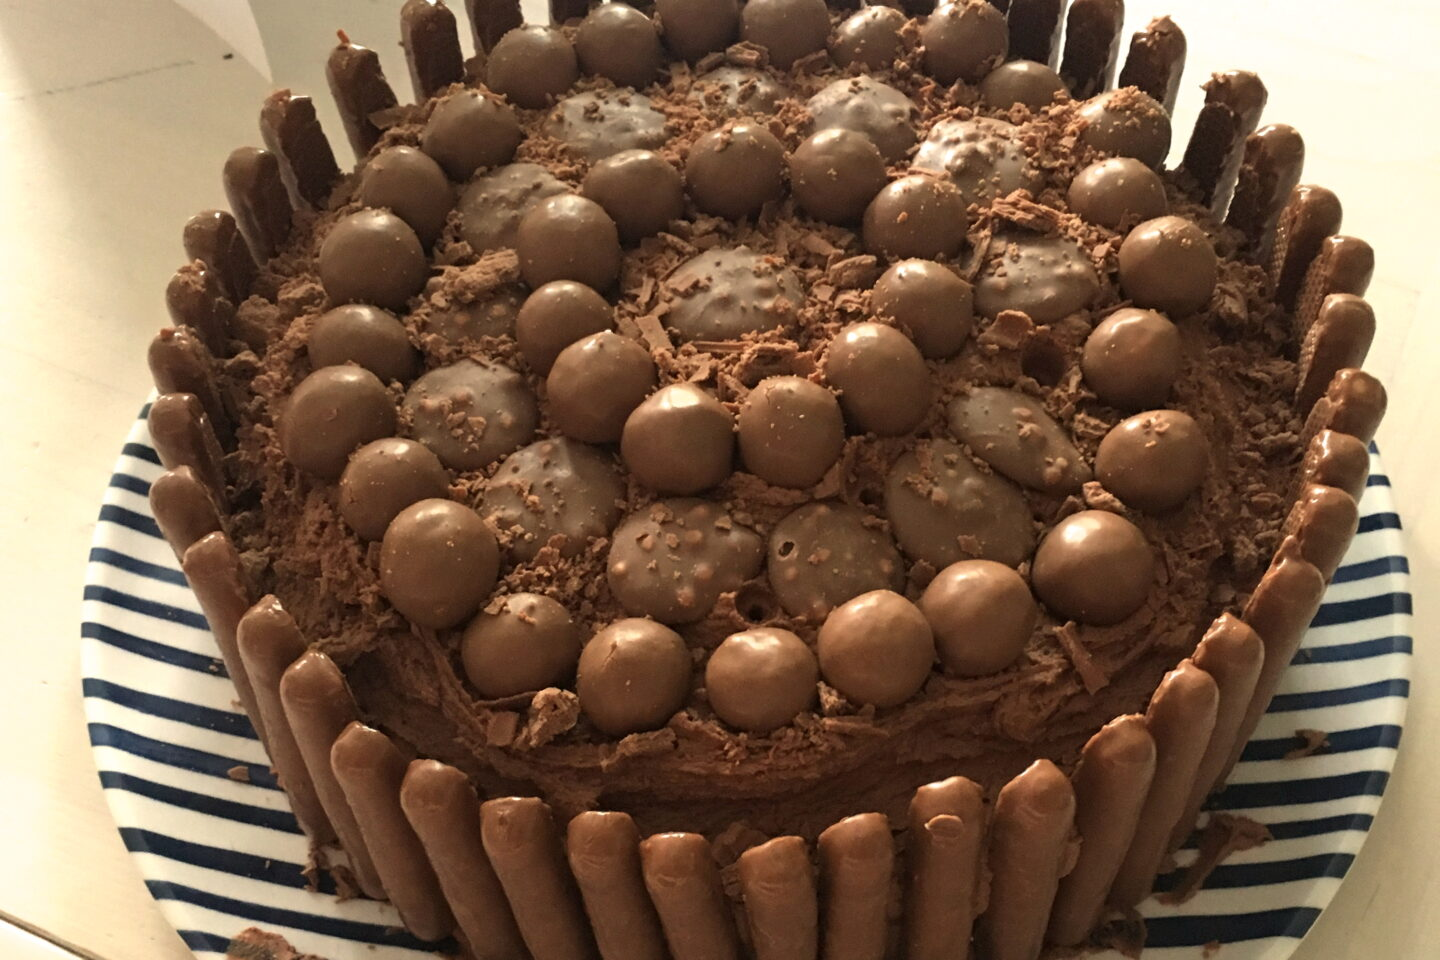 chocolate birthday cake decorated with chocolate buttons, maltesers and chocolate fingers for weekly gratitude